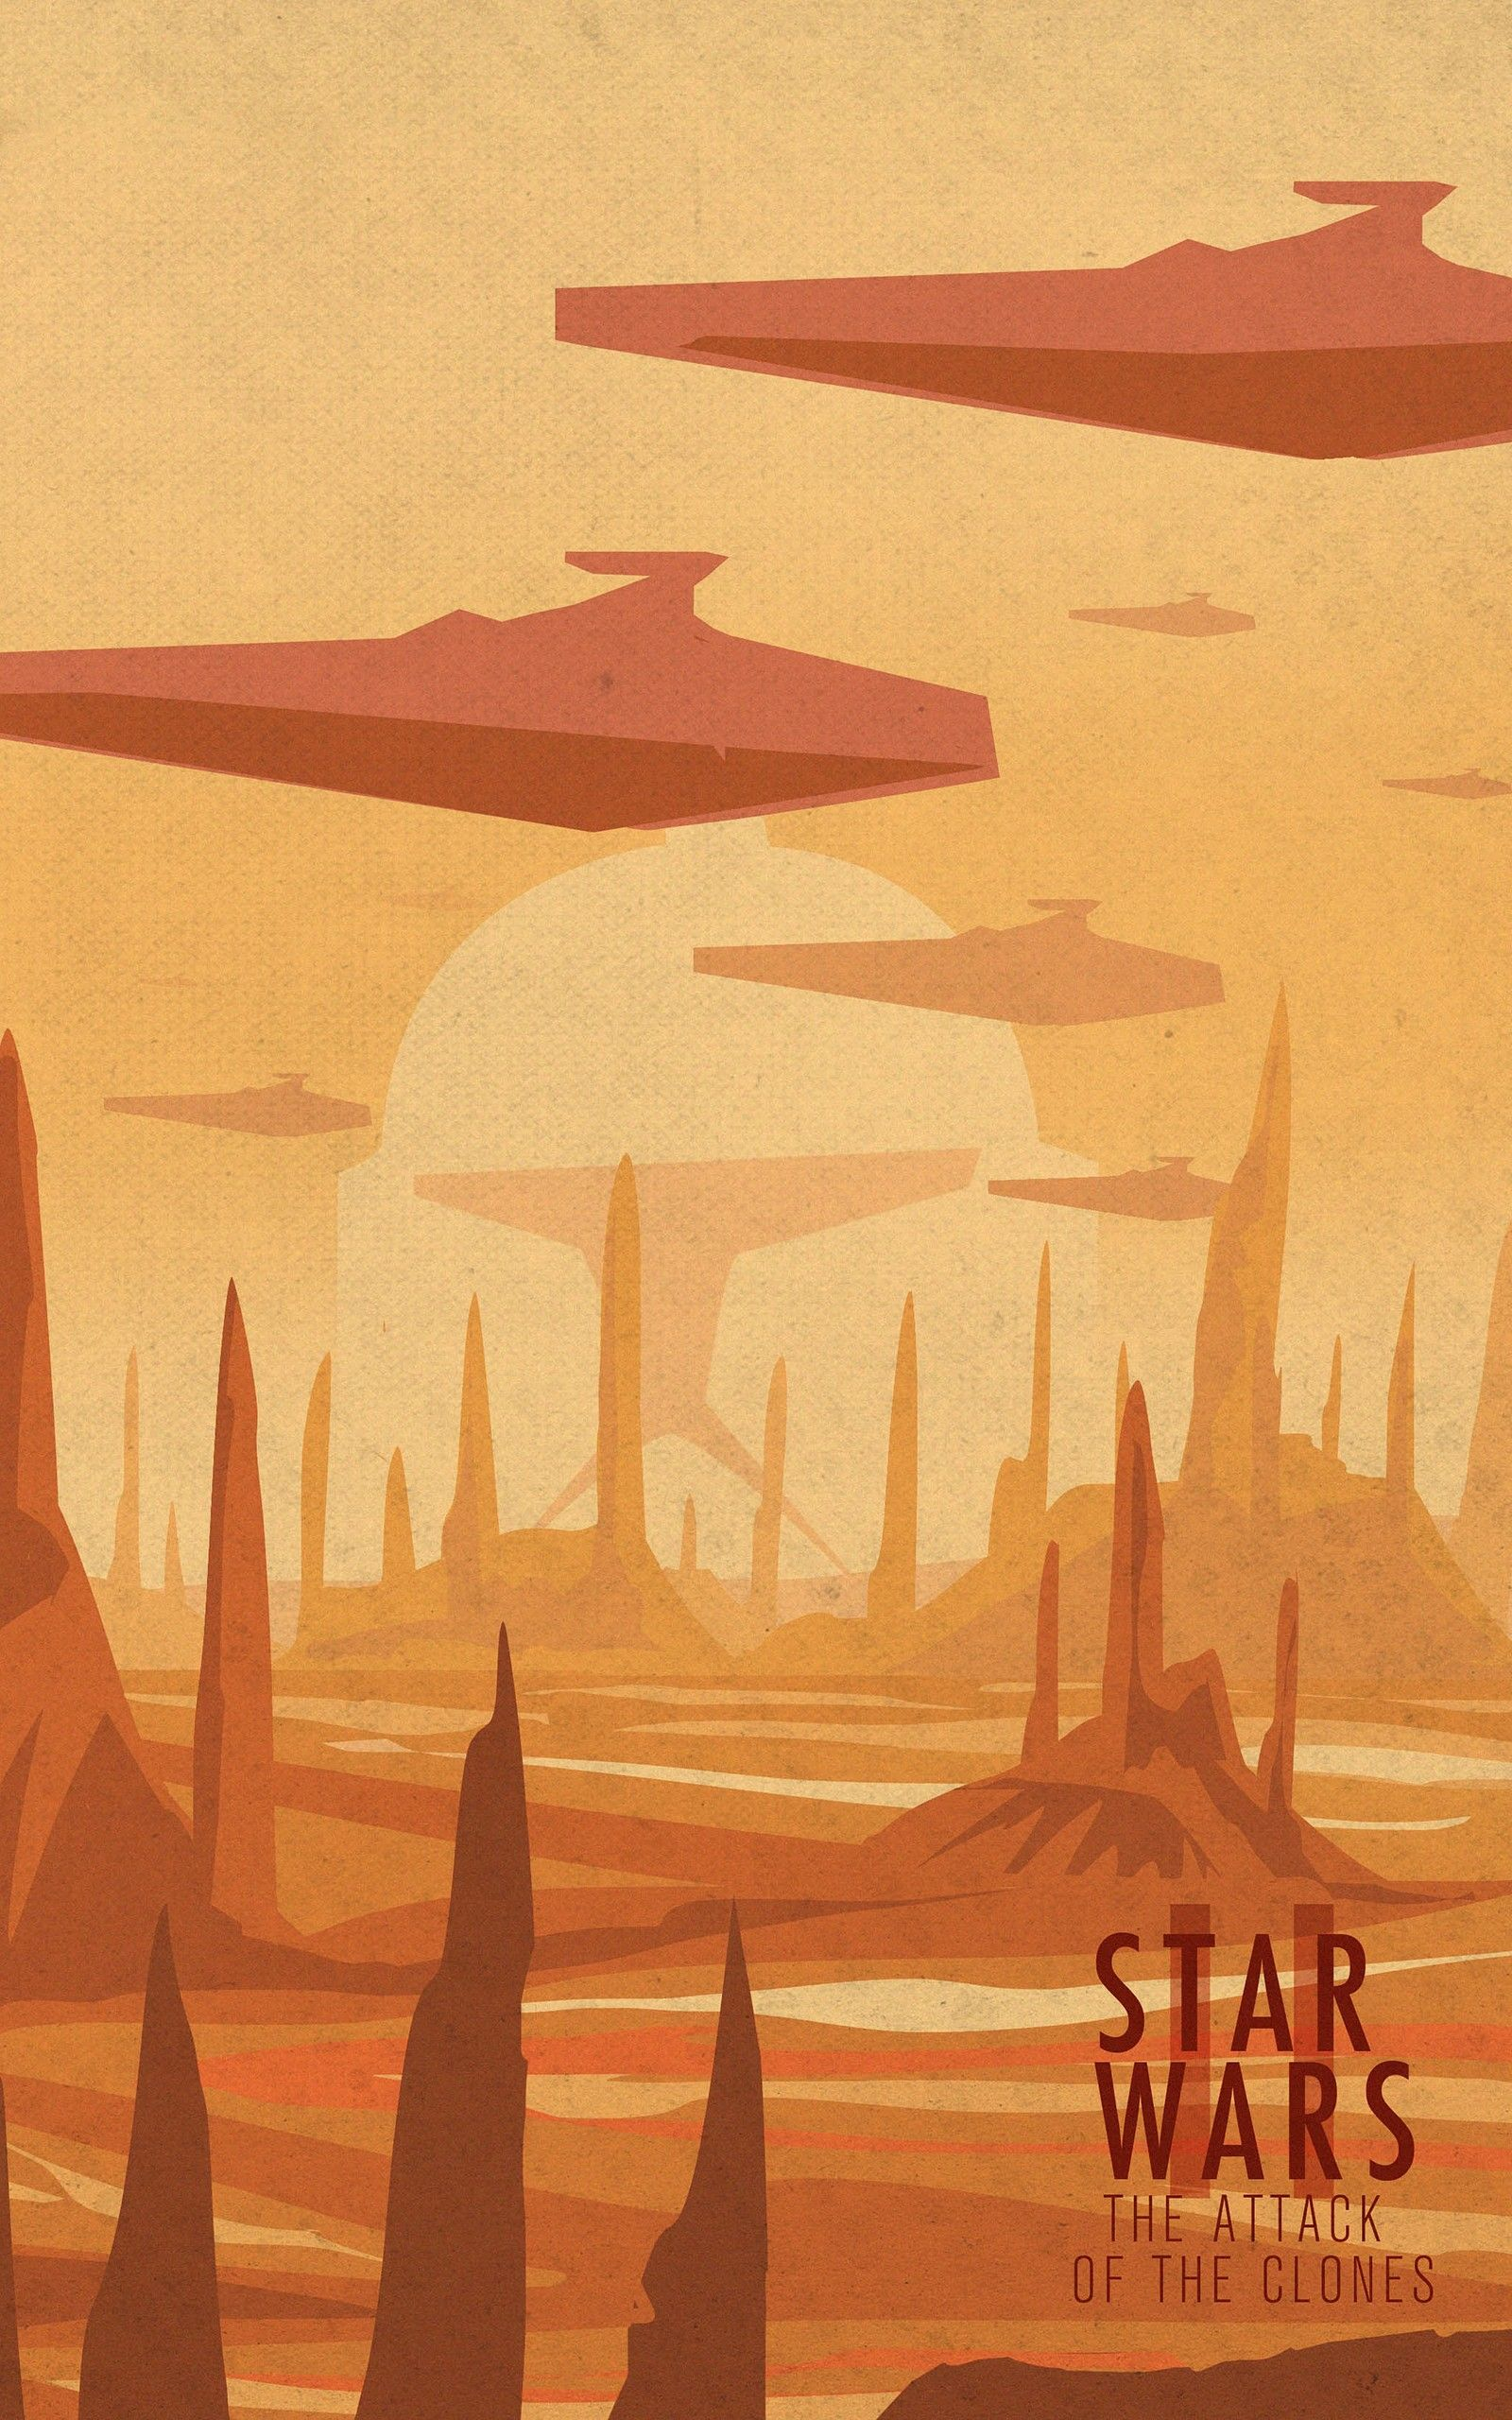 Download Hd Wallpapers Of 299931 Star Wars Minimalism Star Wars Episode Ii The Attack Of Th Star Wars Travel Posters Star Wars Poster Star Wars Poster Art